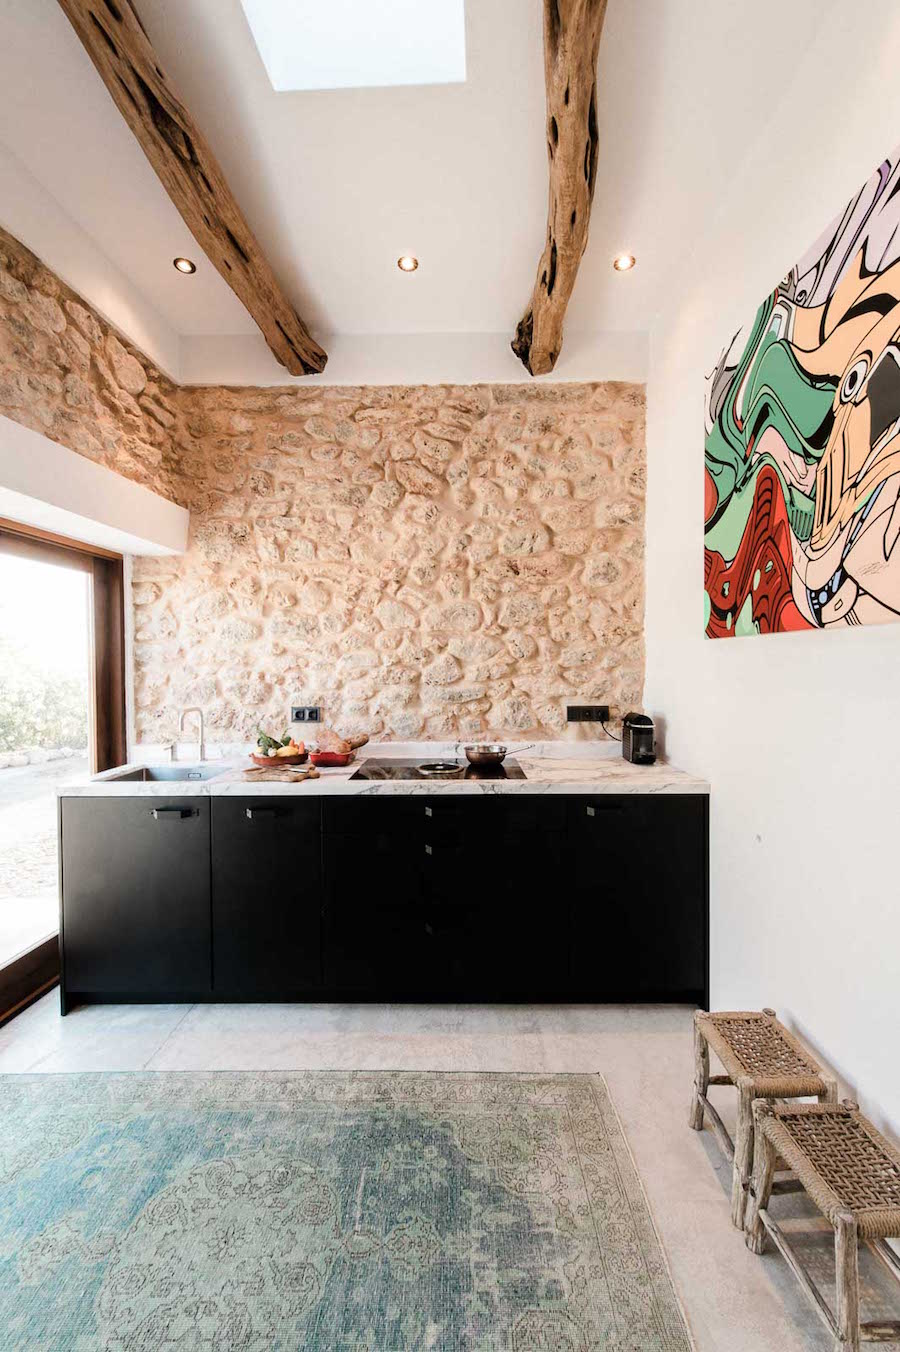 Ibiza Campo by Standard Studio and Ibiza Interiors.